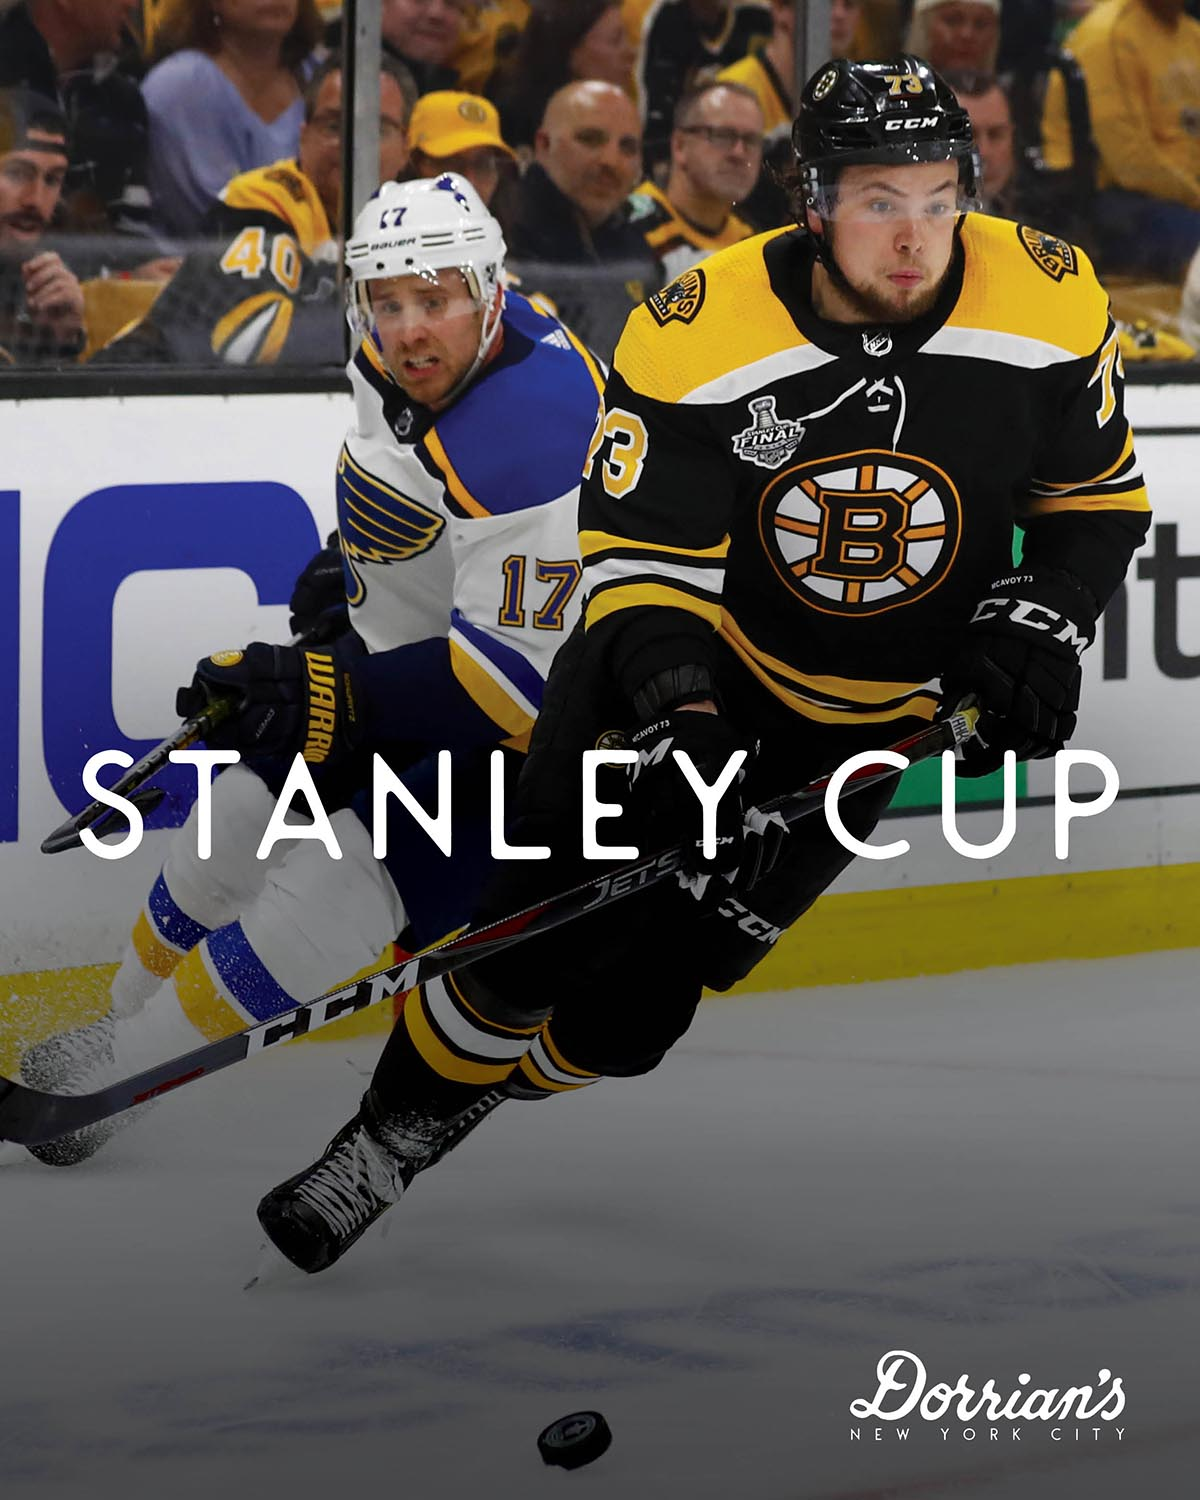 drh_nyc-2019-insta-events-sports-nhl-stanley-cup-1500.jpg